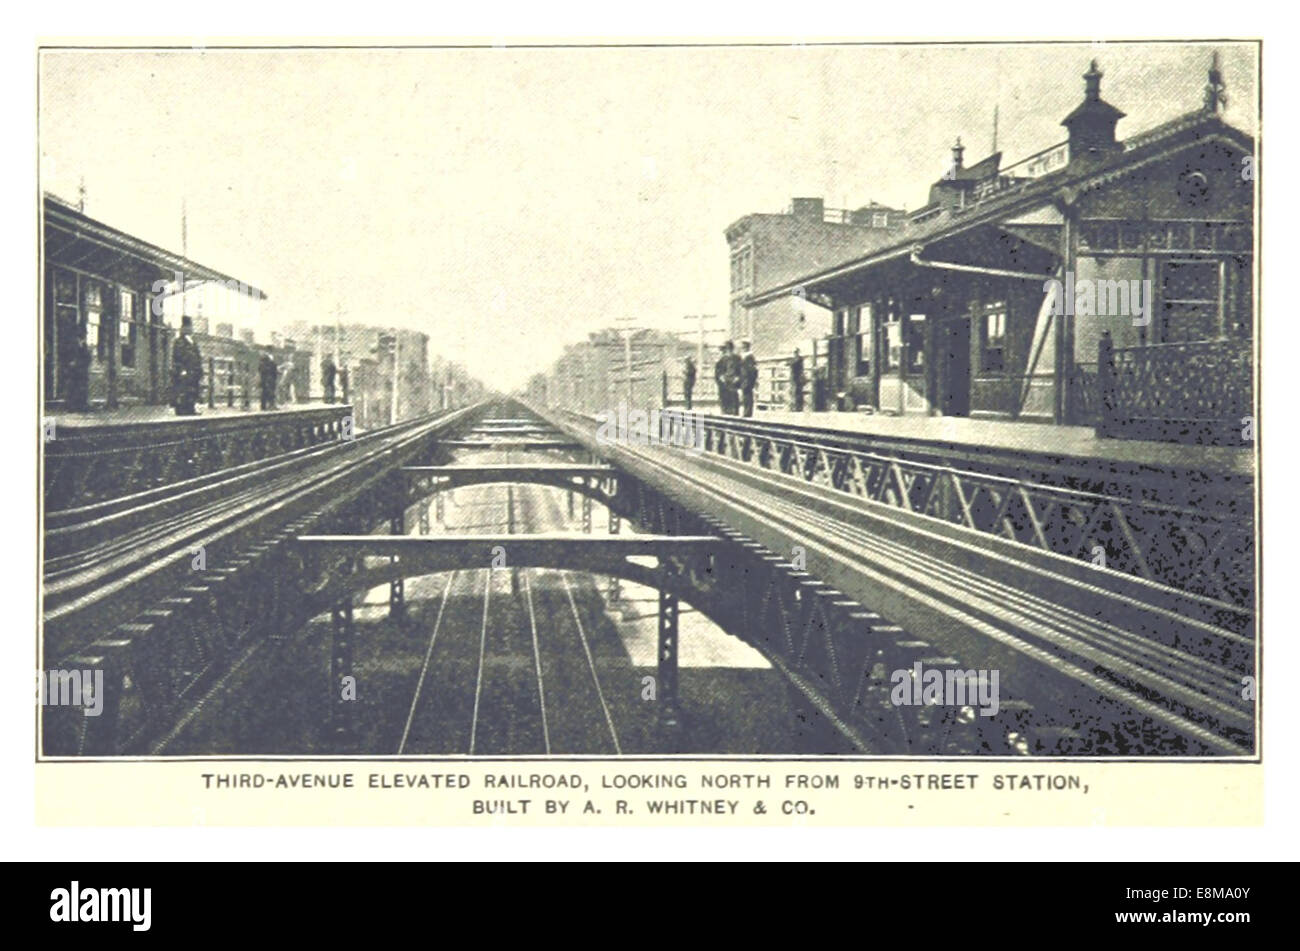 (King1893NYC) pg988 THIRD-AVENUE ELEVATED RAILROAD, LOOKING NORTH FROM 9TH-STREET STATION - Stock Image